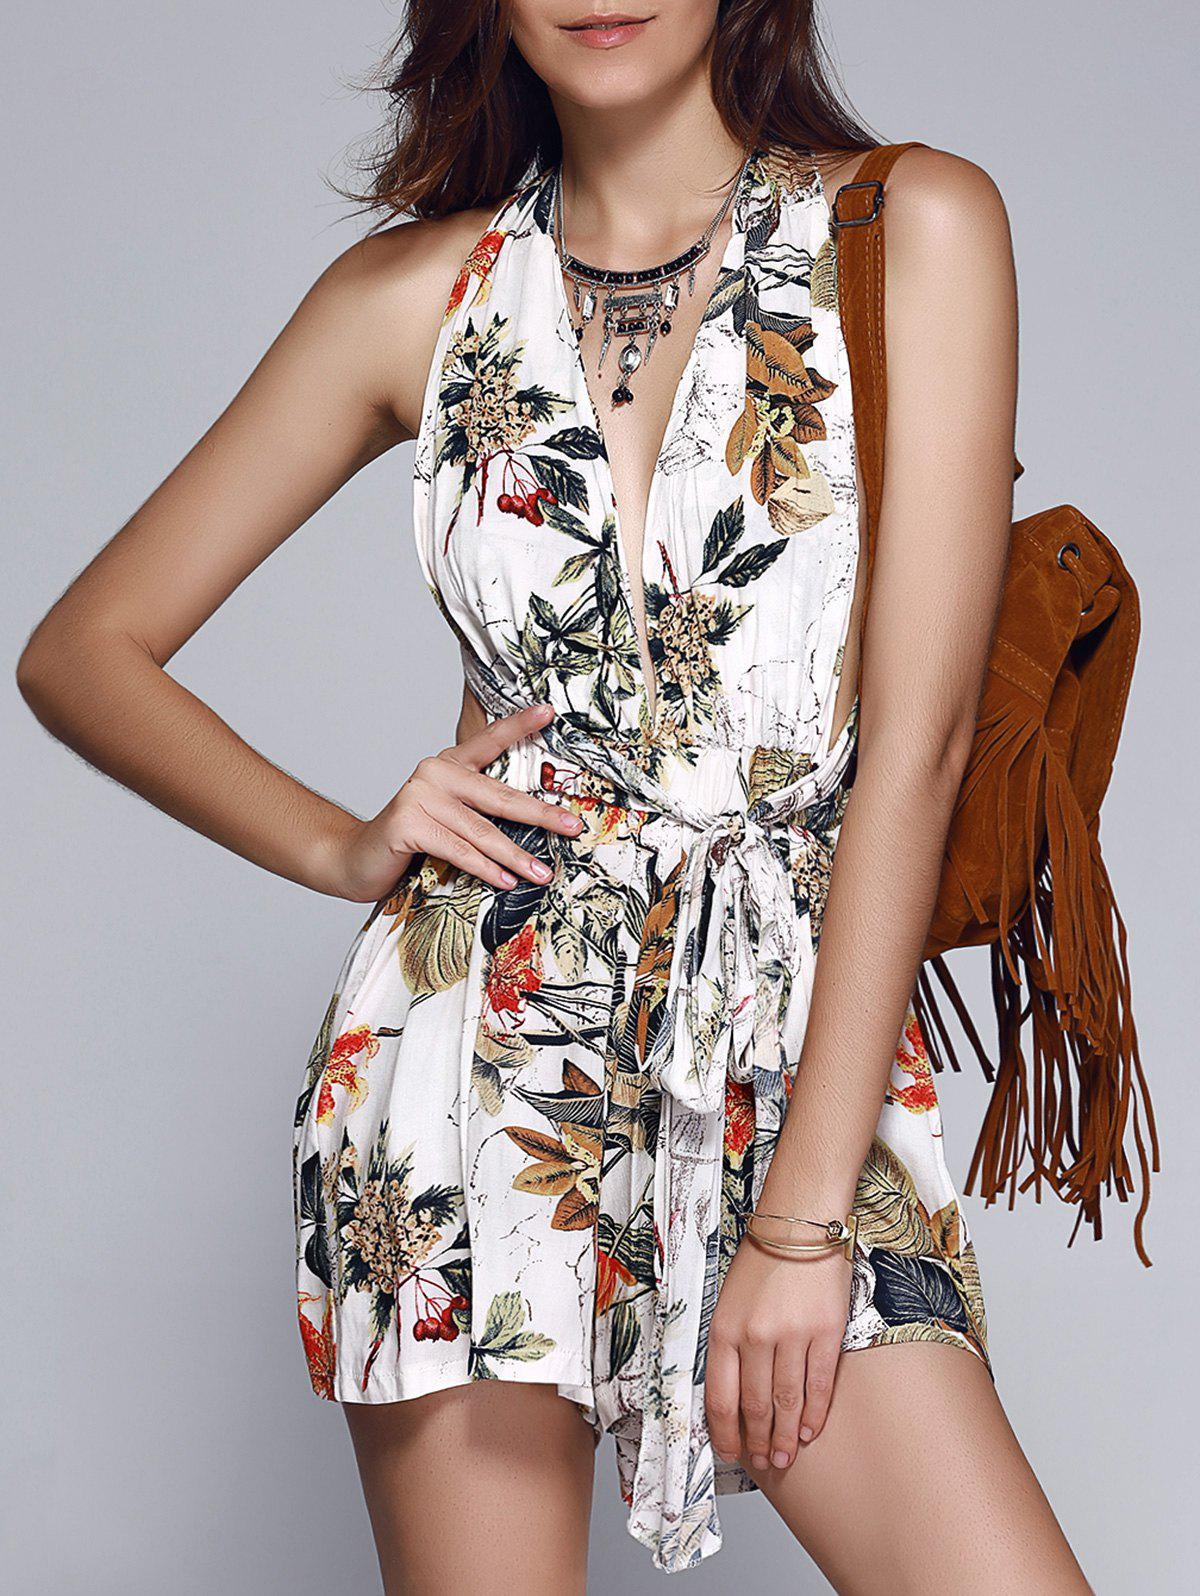 Fashionable Women's Floral Print Tie Backless Romper